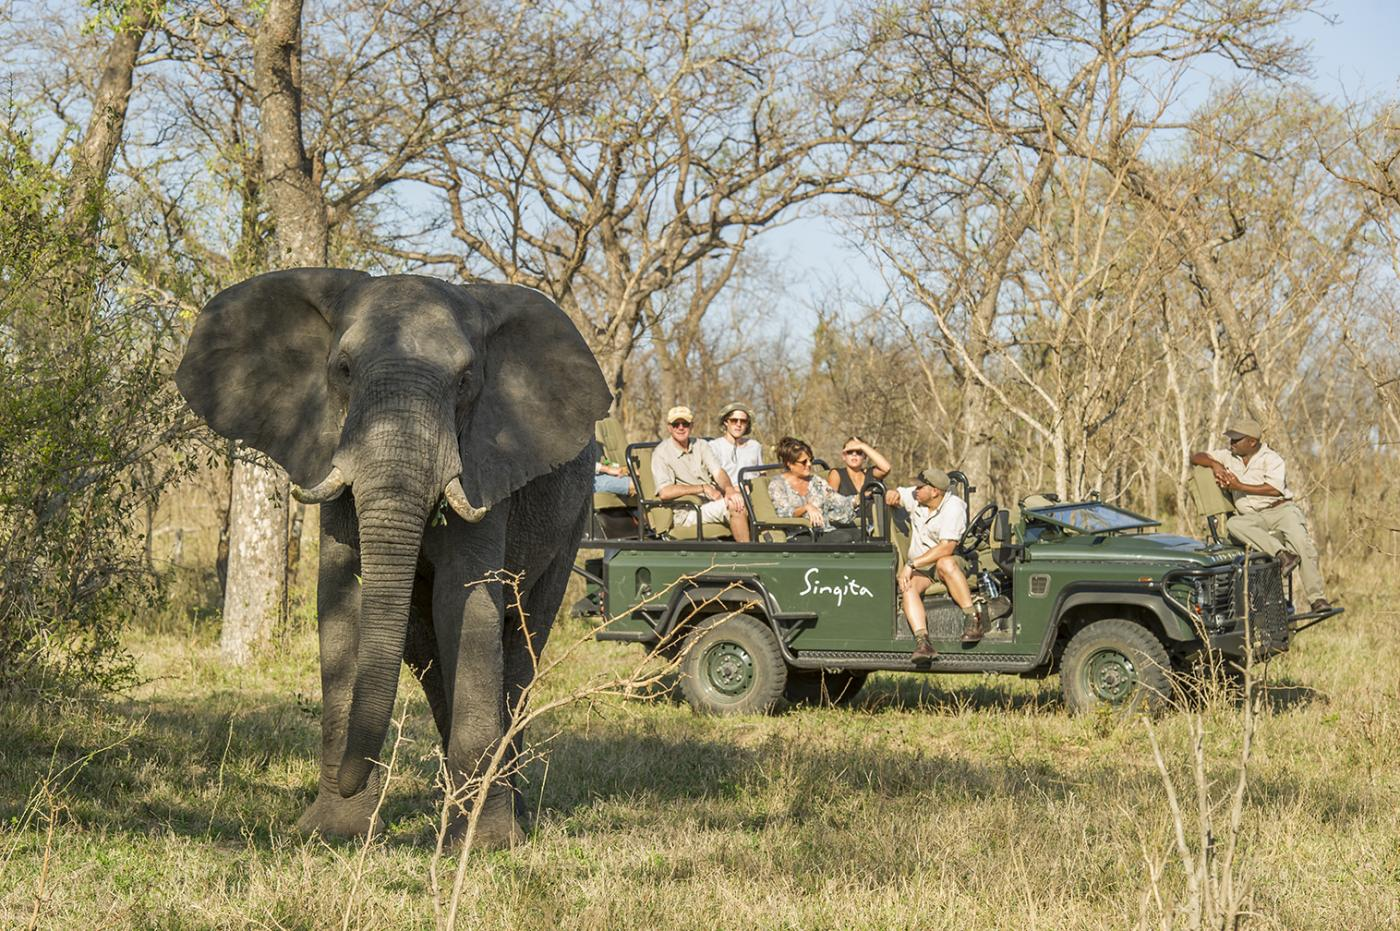 Complete your birthday bucket list with a safari through South Africa's national parks - Singita Castleton.